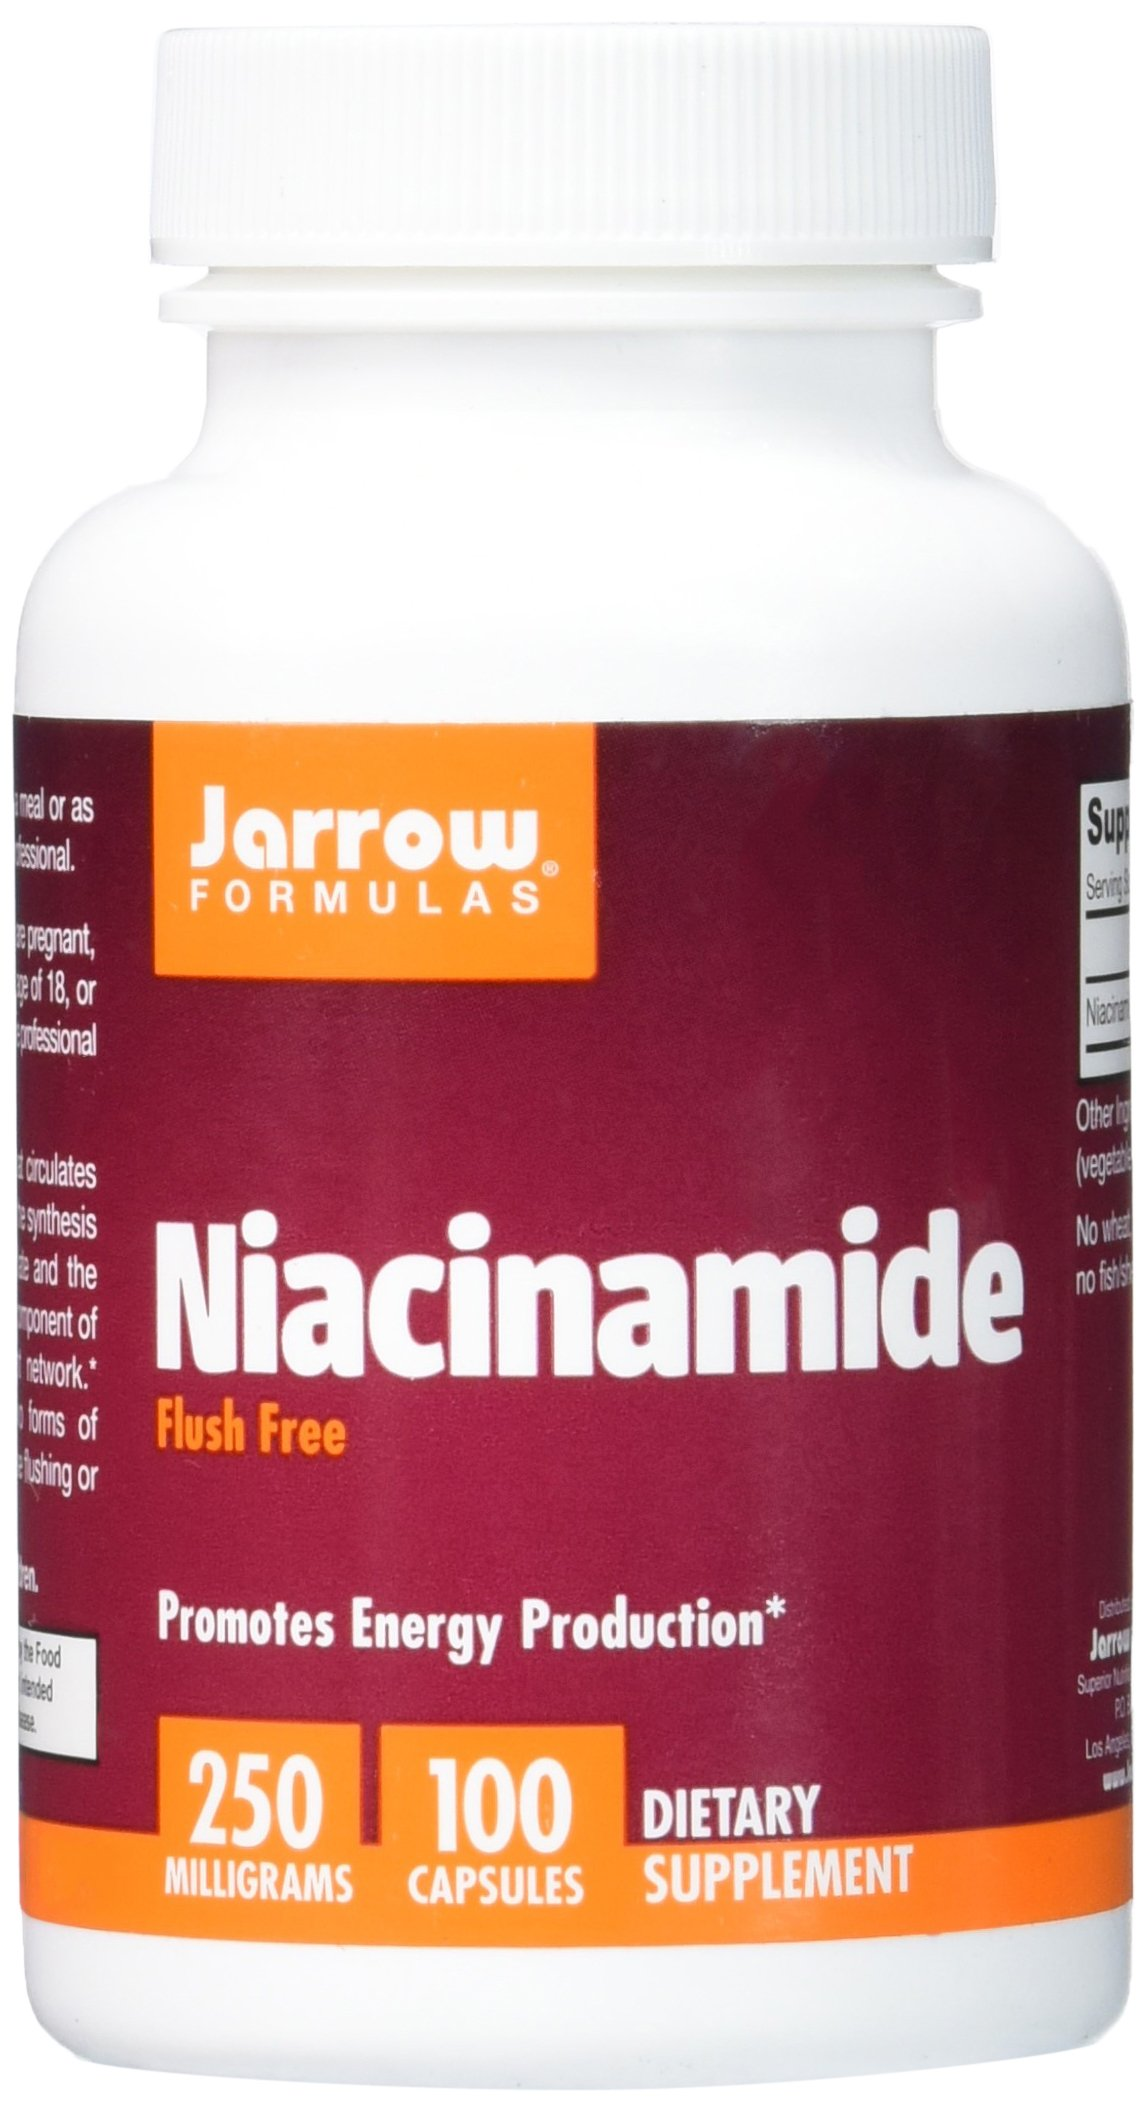 Jarrow Formulas Niacinamide, Promotes Energy Production, 250mg, 100 Capsules (Pack of 3)